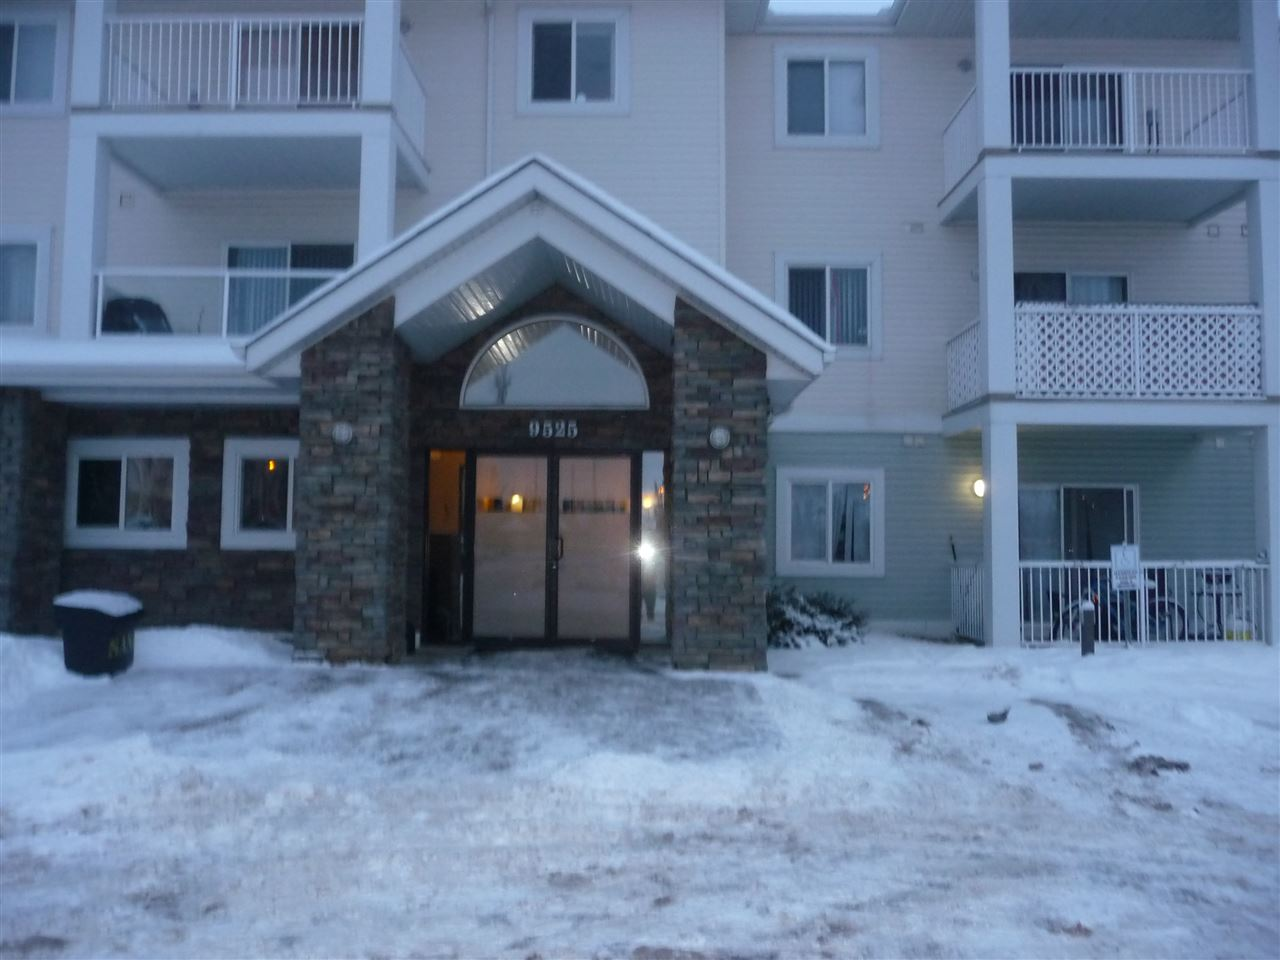 GREAT I BEDROOM TOP FLOOR UNIT FACING NORTH WITH VAULTED CEILING, INSUITE LAUNDRY.GREAT LOCATION FOR BUS,CANADIAN TIRE,SAVE ON FOODS,SOBEY'S,SECOND CUP,PLUS MANY OTHER OUTLETS,LIKE TIM HORTONS ETC,EXCELLENT BUS SERVICE AT THE FRONT DOOR.ALSO ONE TITLE PARKING STALL.ALL THIS ACROSS THE STREET TO NAMAO CENTER AND MINUTES FROM MILITARY BASE.UNIT HAS JUST BEEN PAINTED AND CARPETS CLEAN VERY CLEAN UNIT READY TO MOVE IN AND ENJOY.PARKING STALL CLOSE TO FRONT ENTRANCE AND  VERY WIDE BECAUSE OF LOCATION.